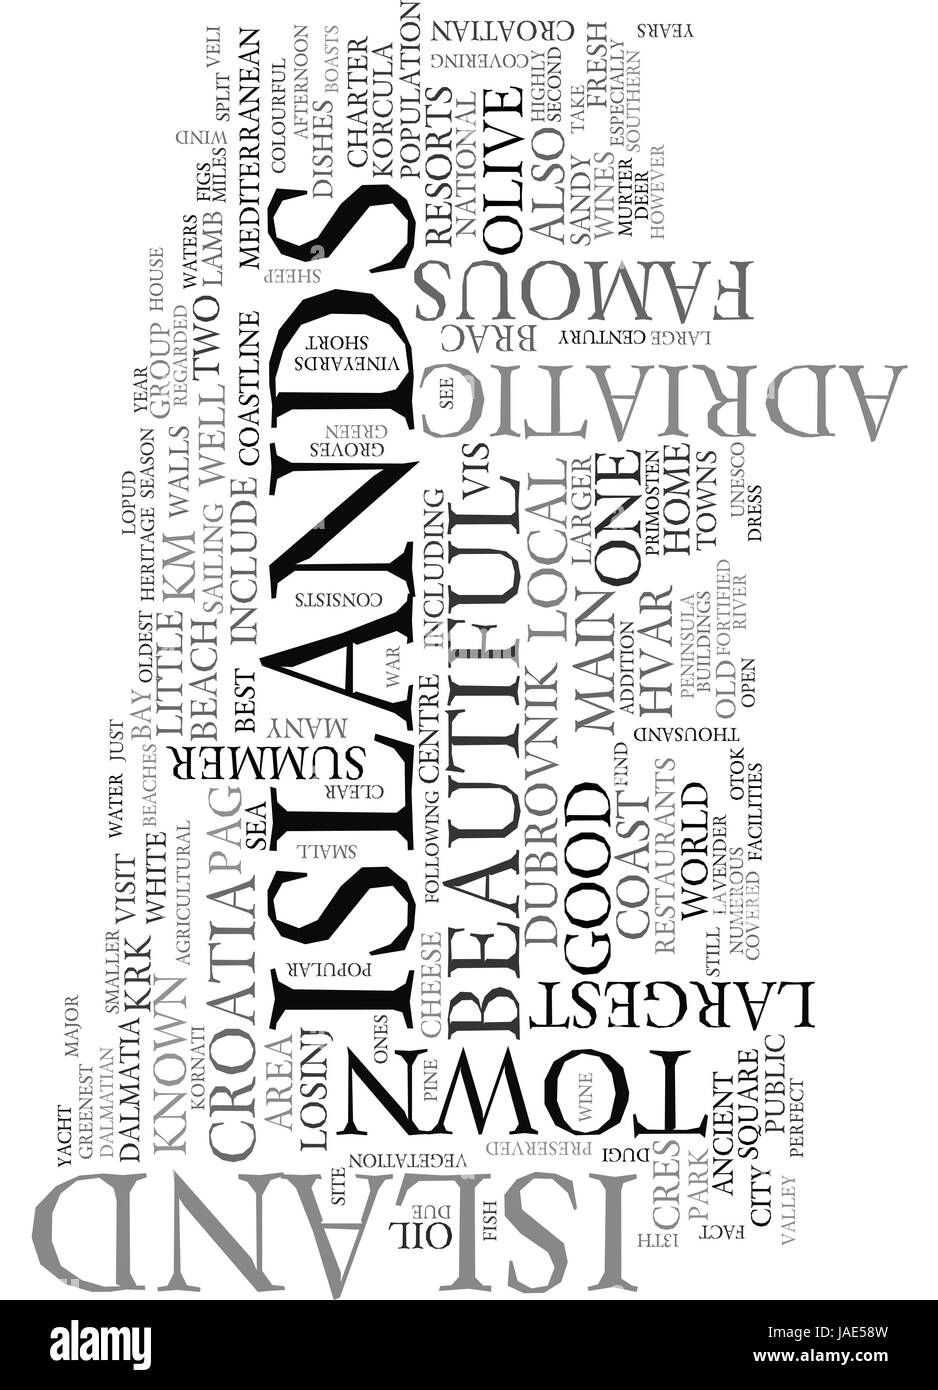 YACHT CHARTER IN CROATIA TEXT WORD CLOUD CONCEPT - Stock Image